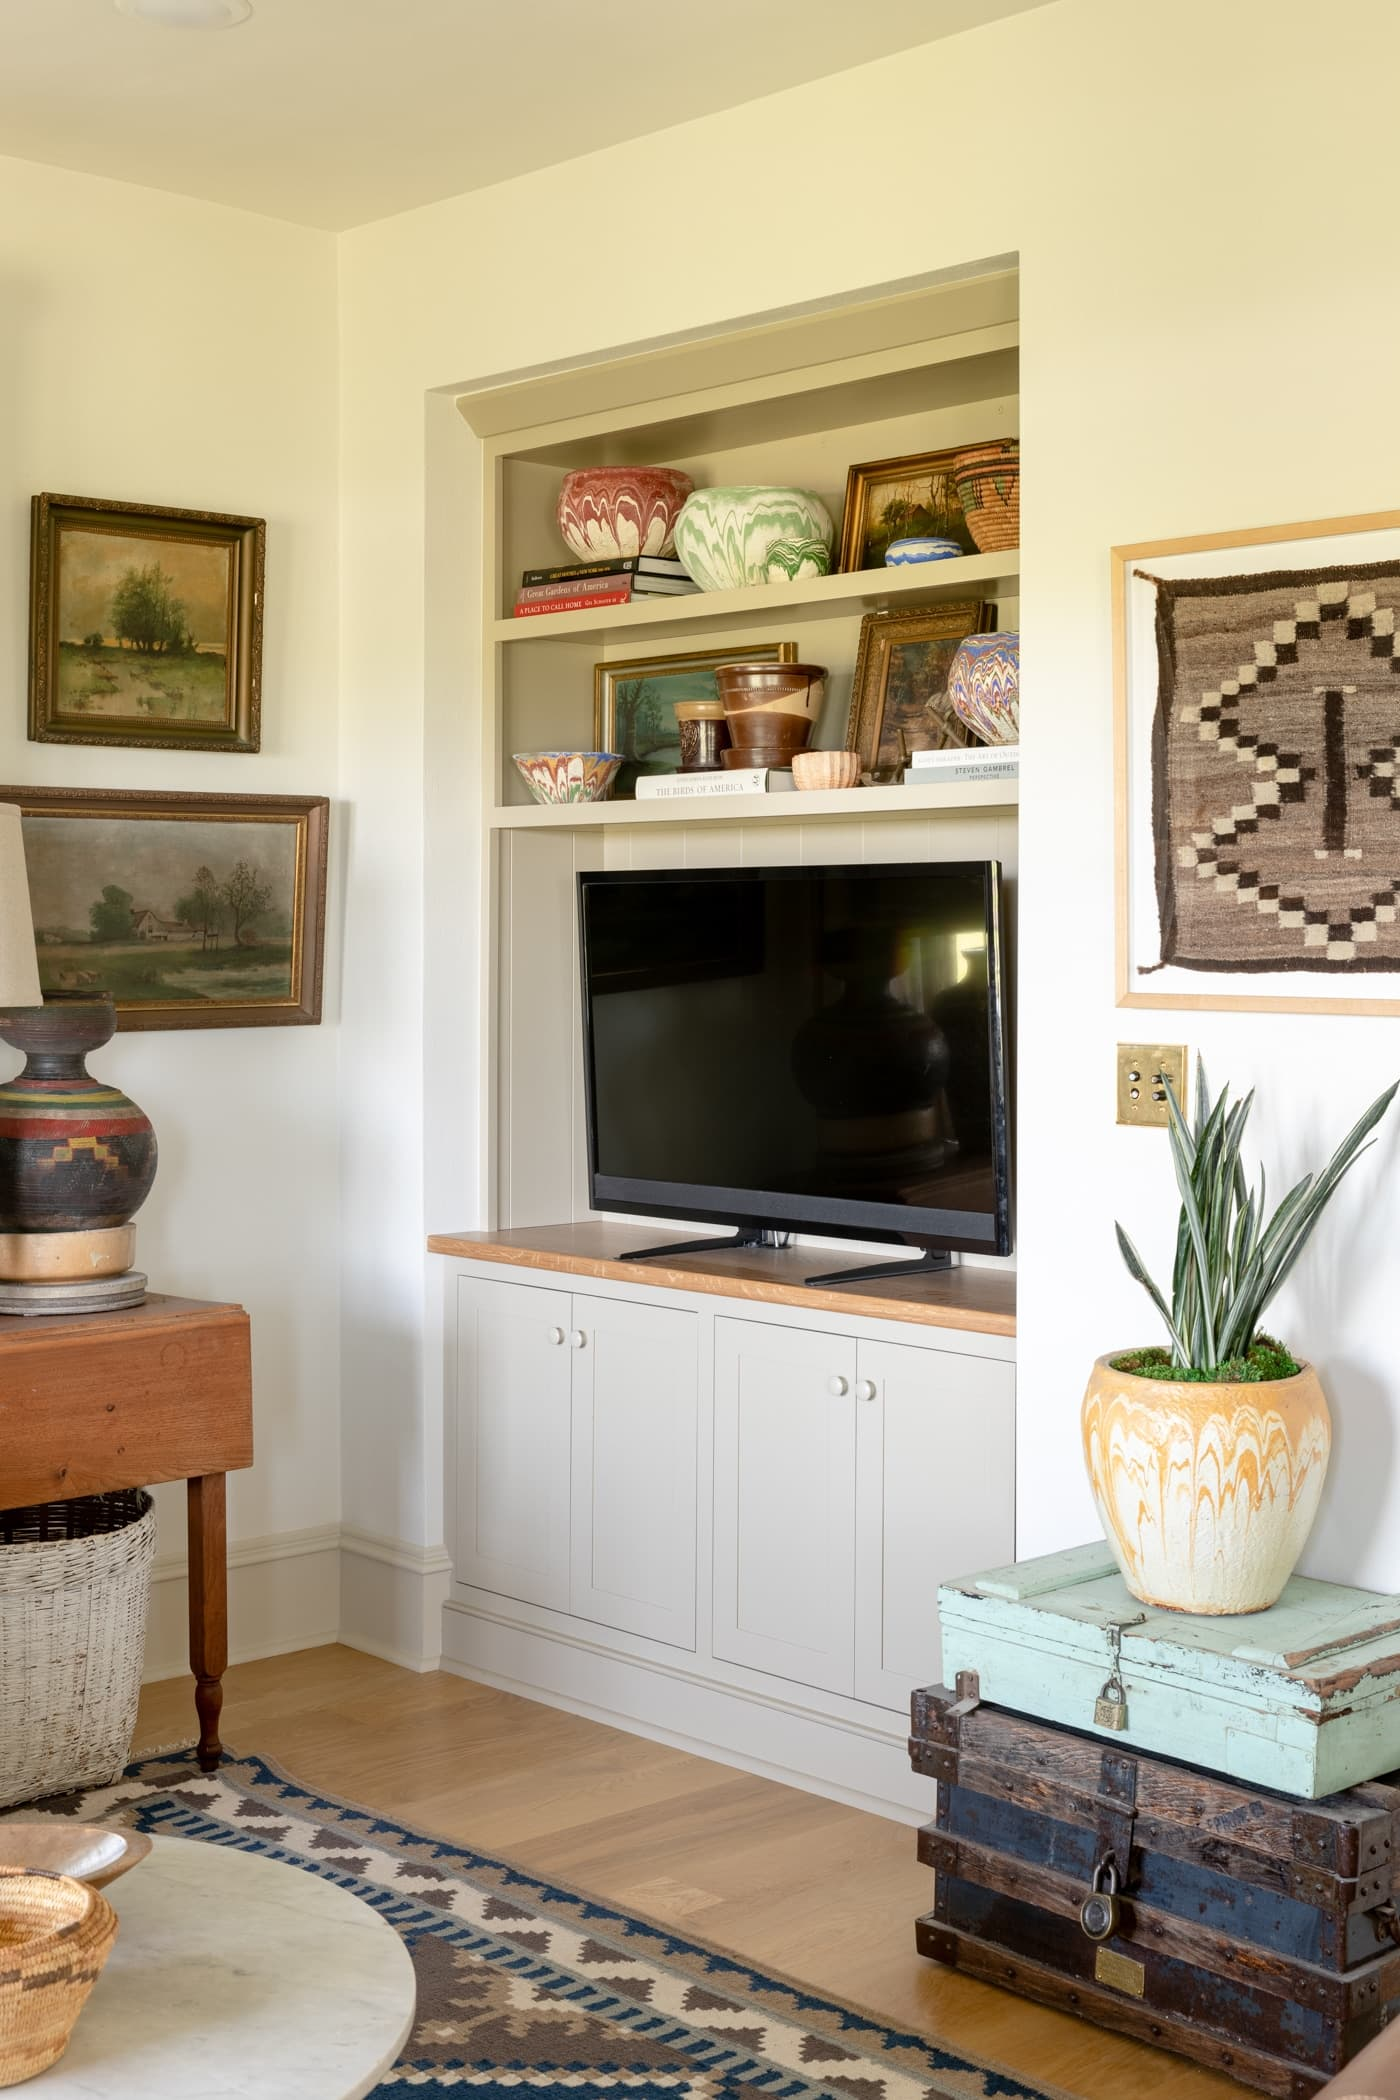 TV sitting in a built-in unit with cabinets underneath and shelves above with paintings on the surrounding walls and a blue rug on on the hardwood floors